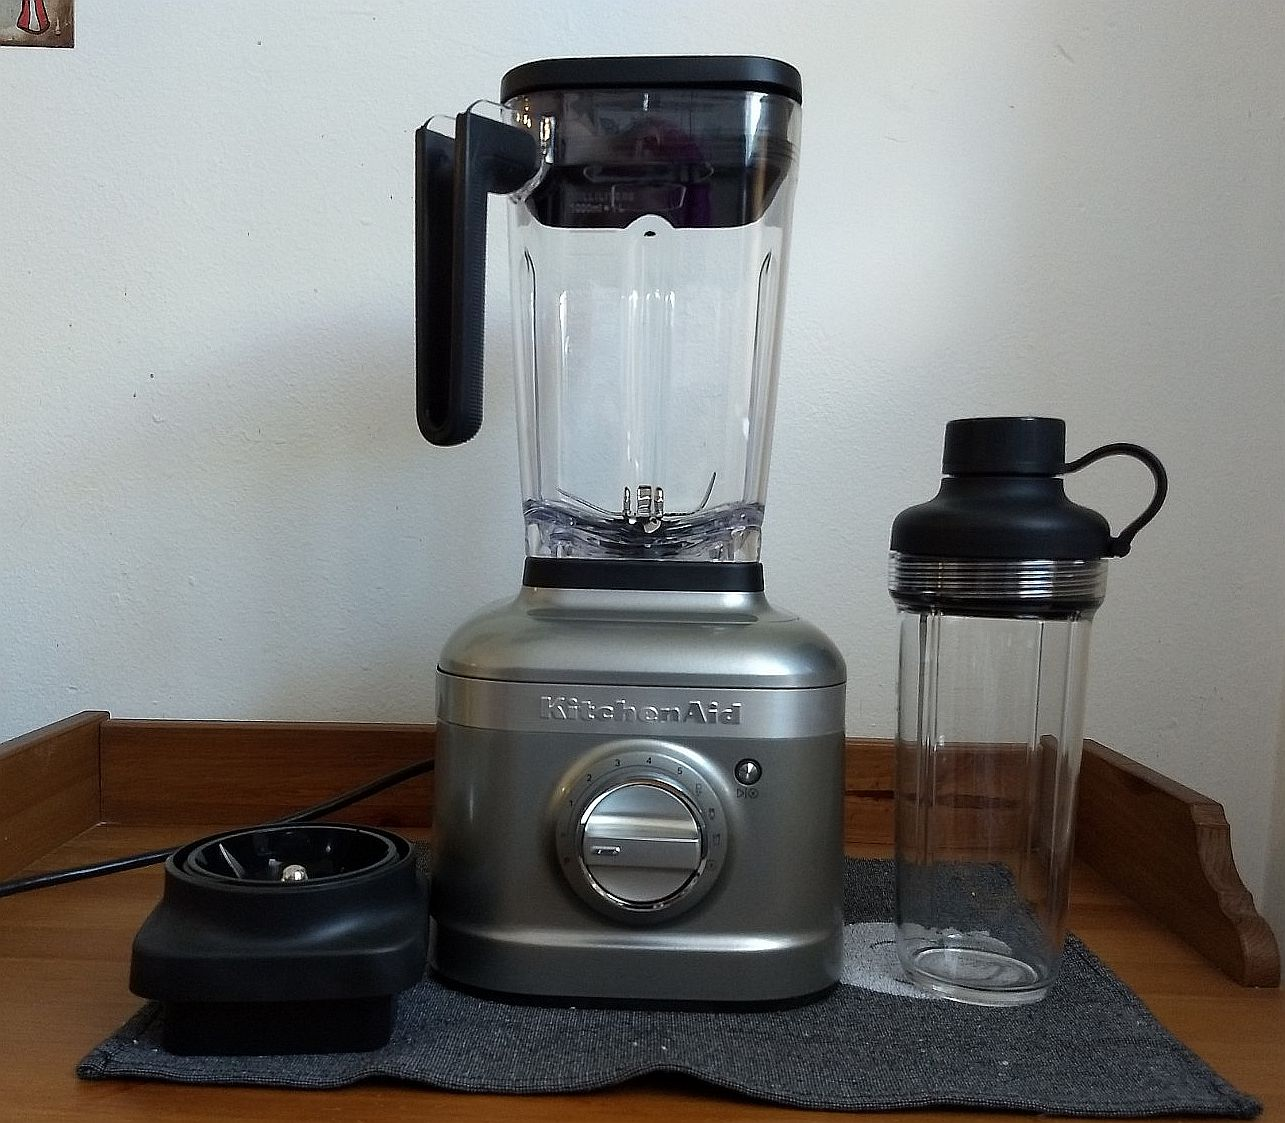 Mélangeur KitchenAid K400